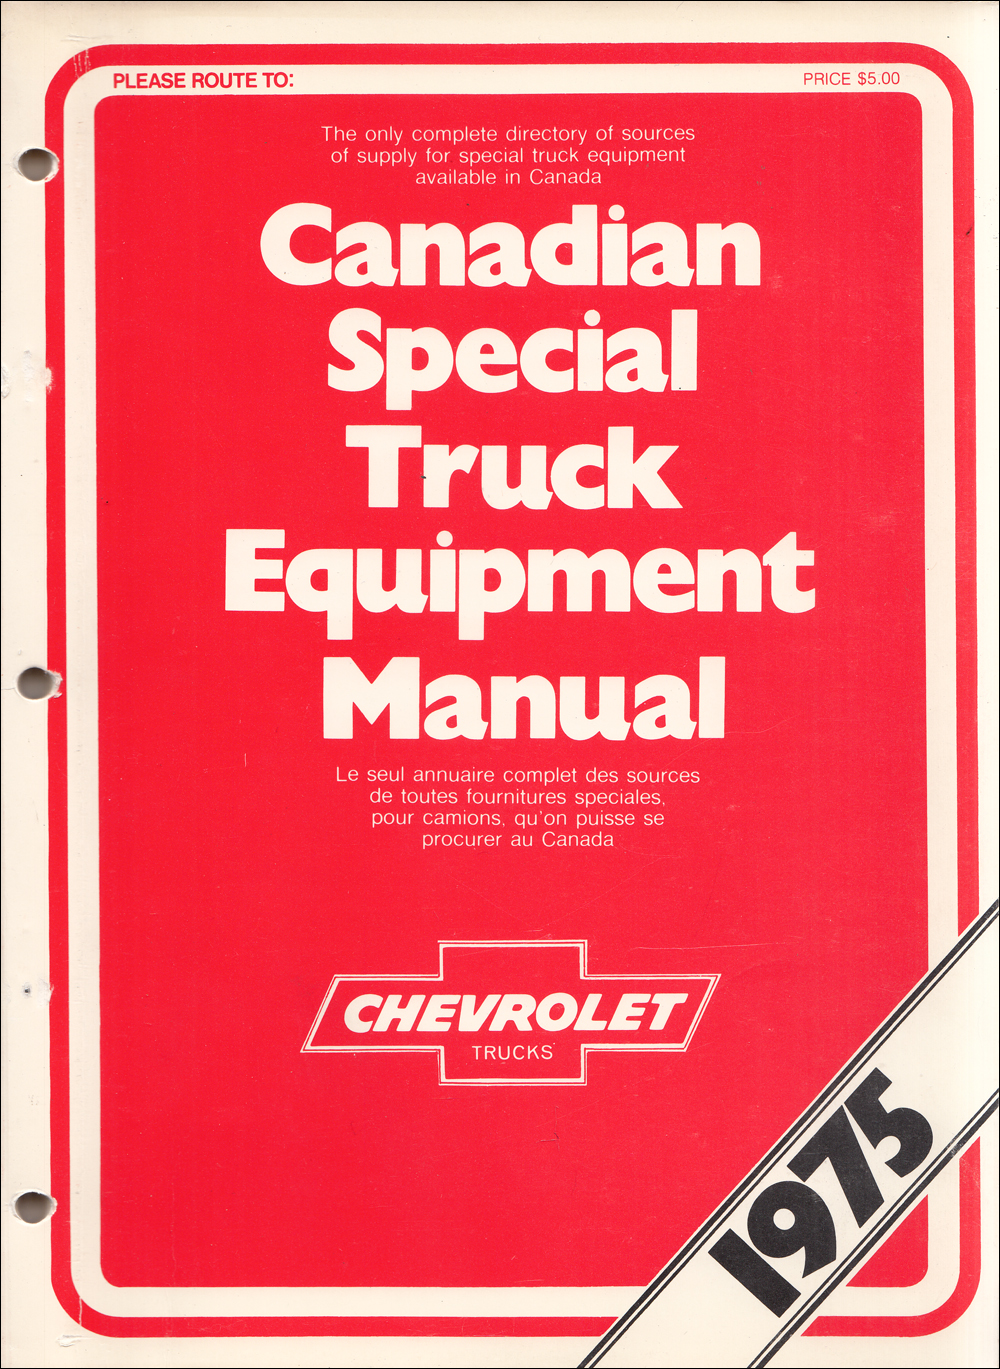 1975 Chevrolet Truck Special Equipment Dealer Album Canadian